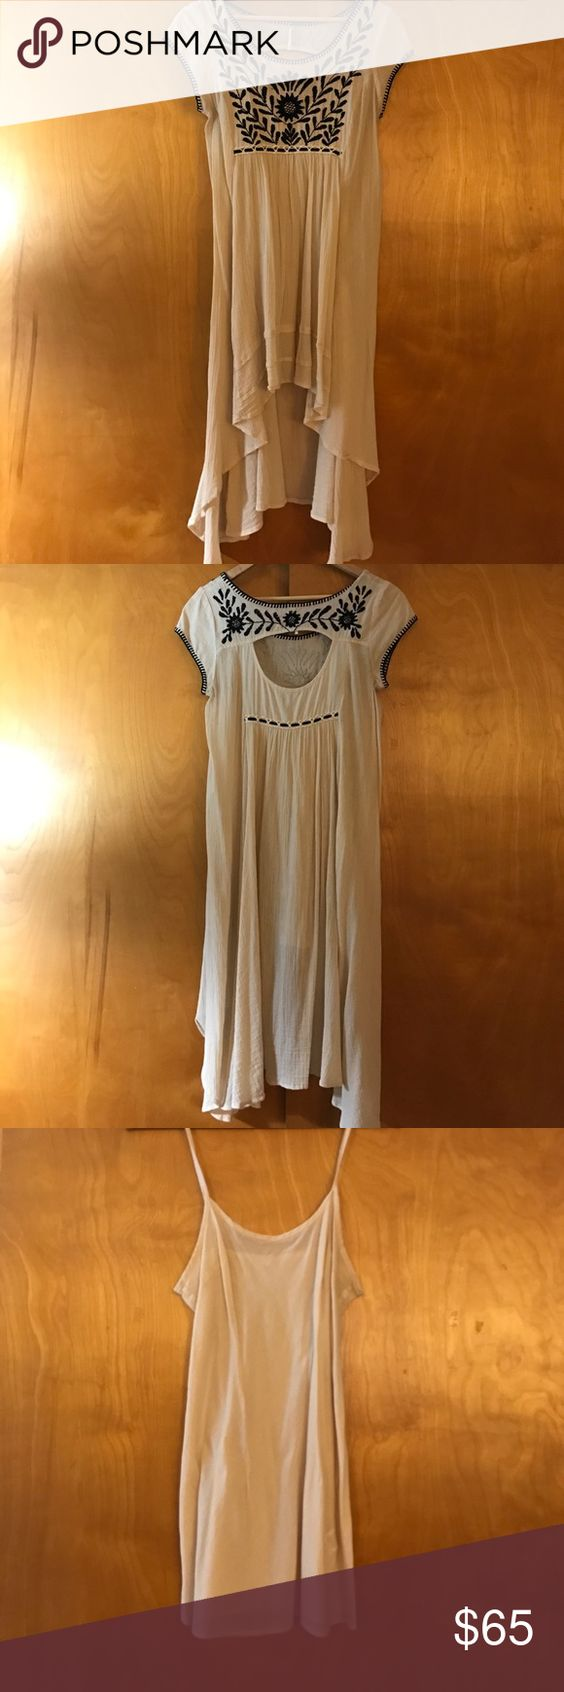 The dress how to see it both ways - Free People Top Dress Adorable Free The People Embroidered Top This Can Also Be